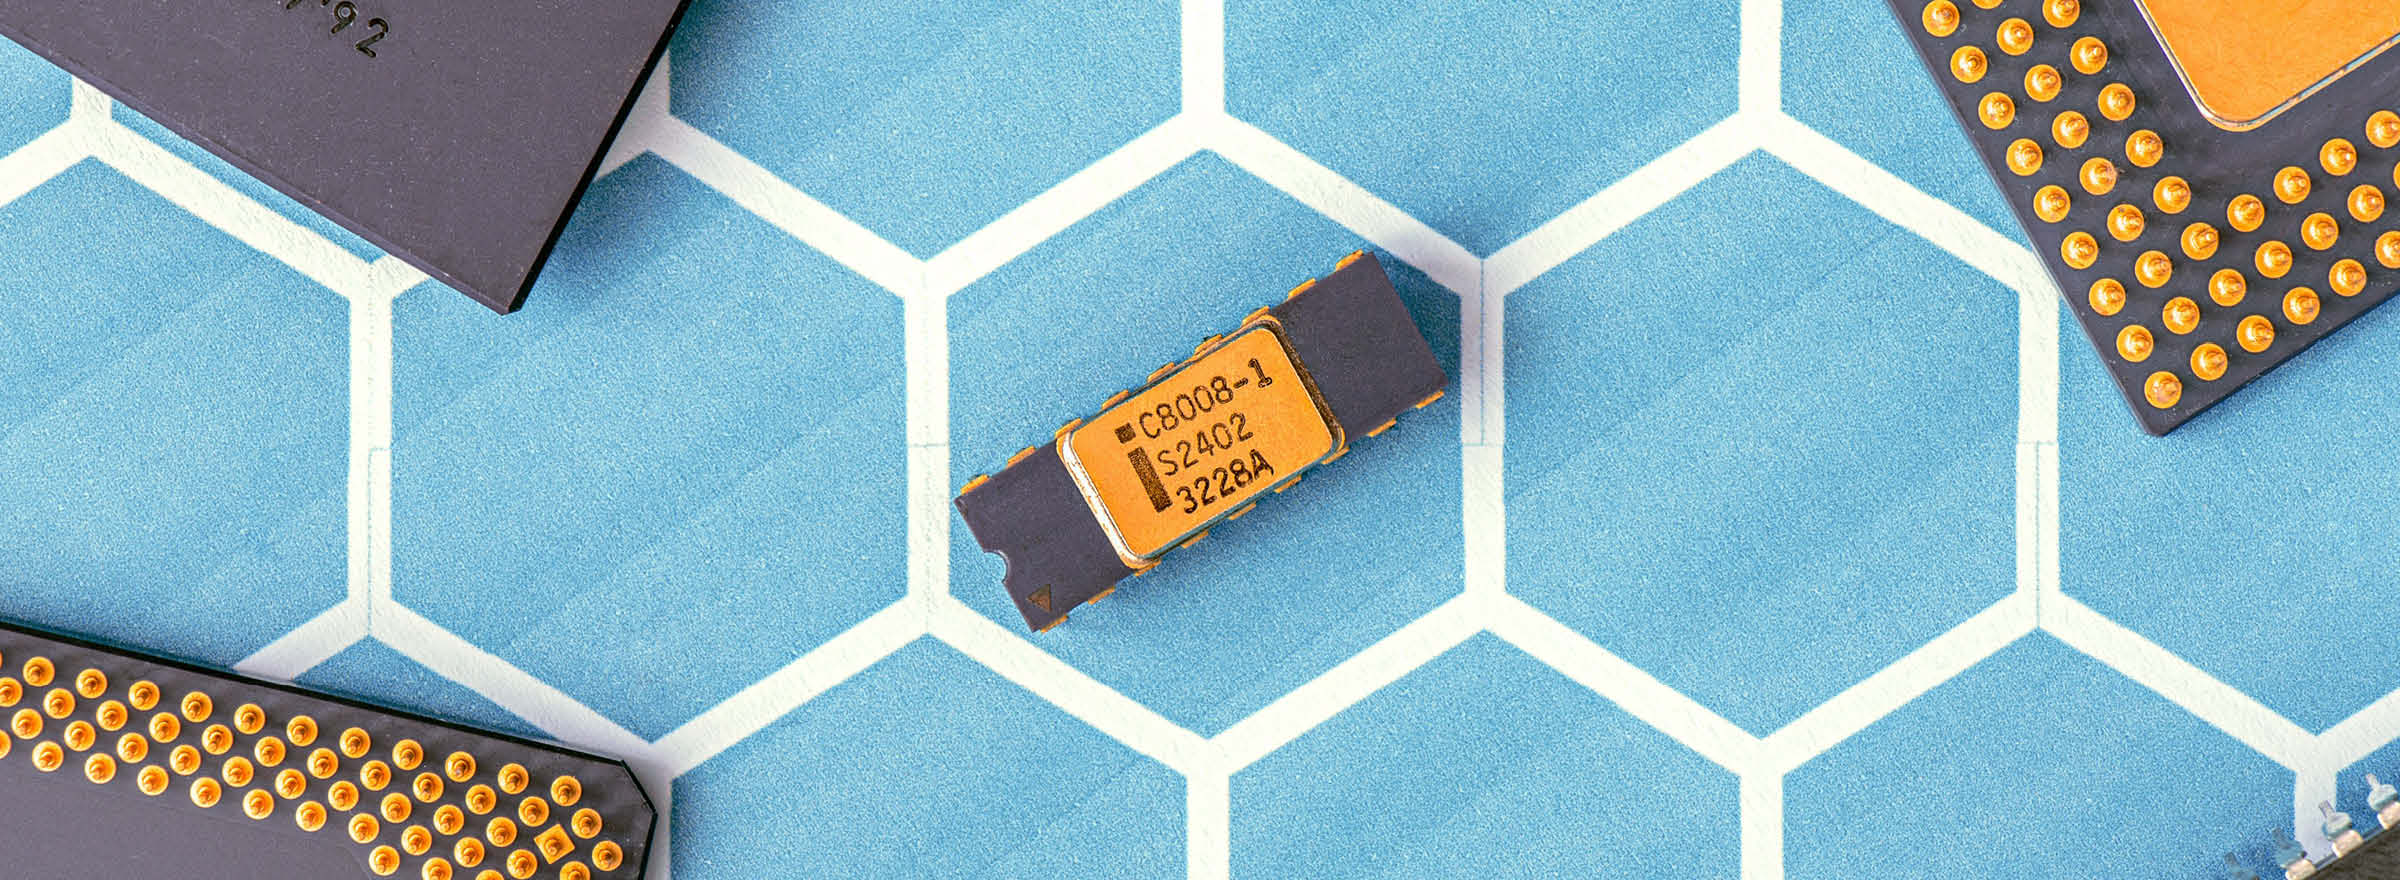 a computer chip resting on top of a hexagonal grid